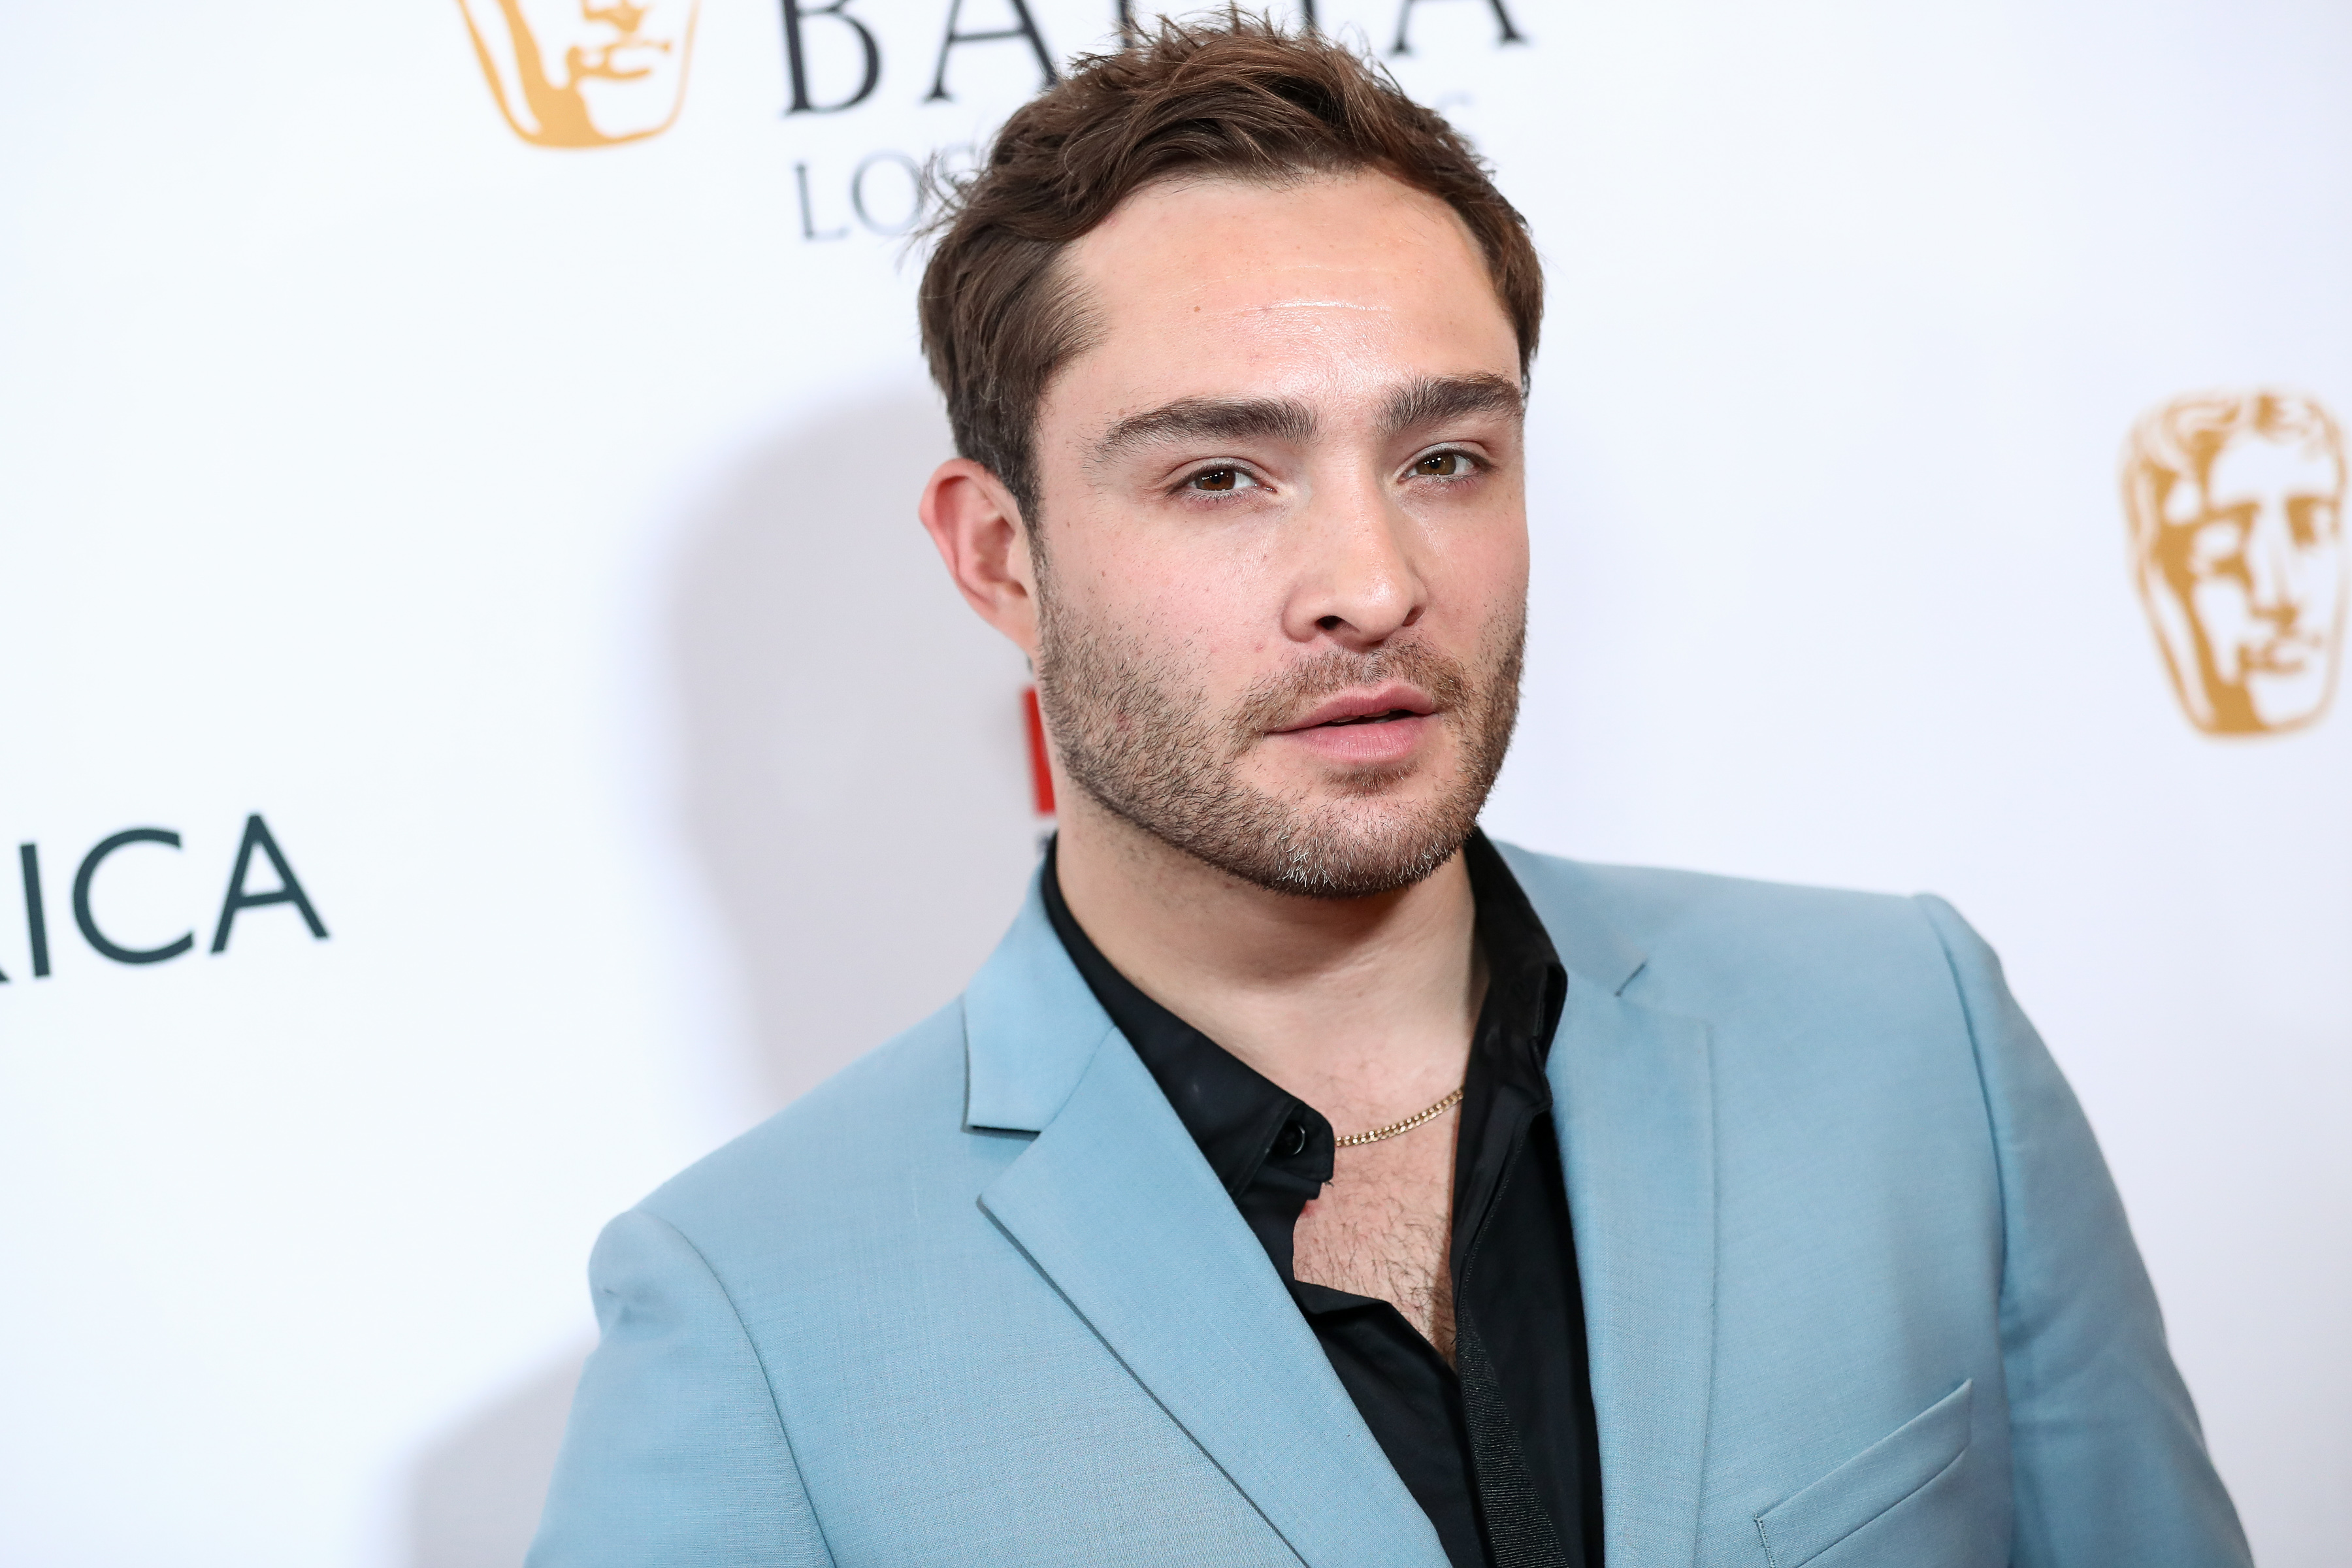 Adam Venit Images >> 'Gossip Girl' Star Ed Westwick Accused of Rape by Kristina Cohen | IndieWire